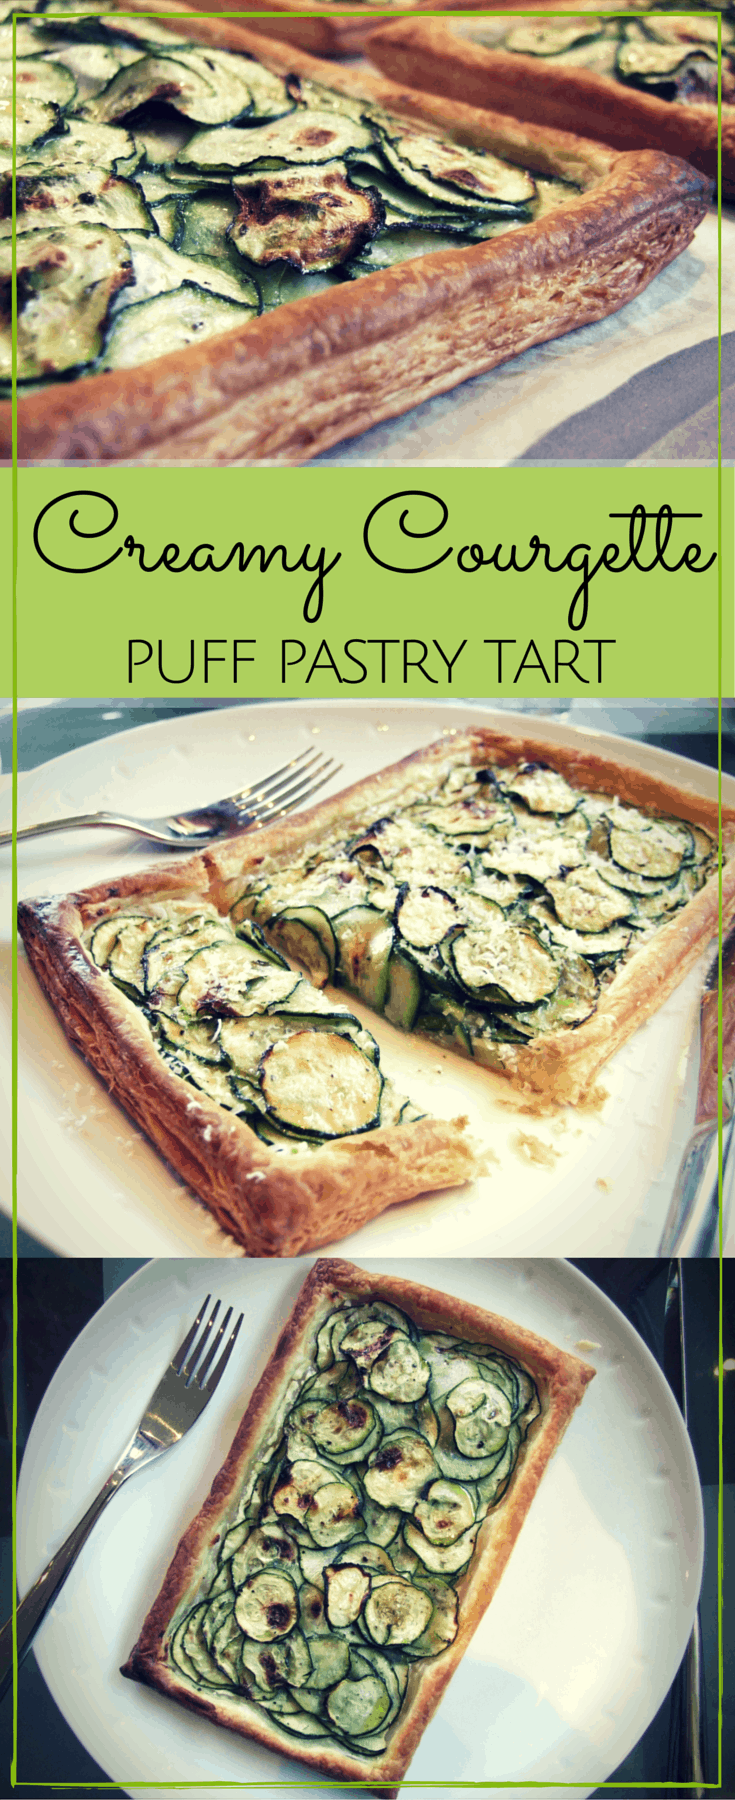 Layers of tender courgette (zucchini) slices top this delicious puff pastry tart. Easy to make & full of flavour! Serve with salad for a quick family meal.